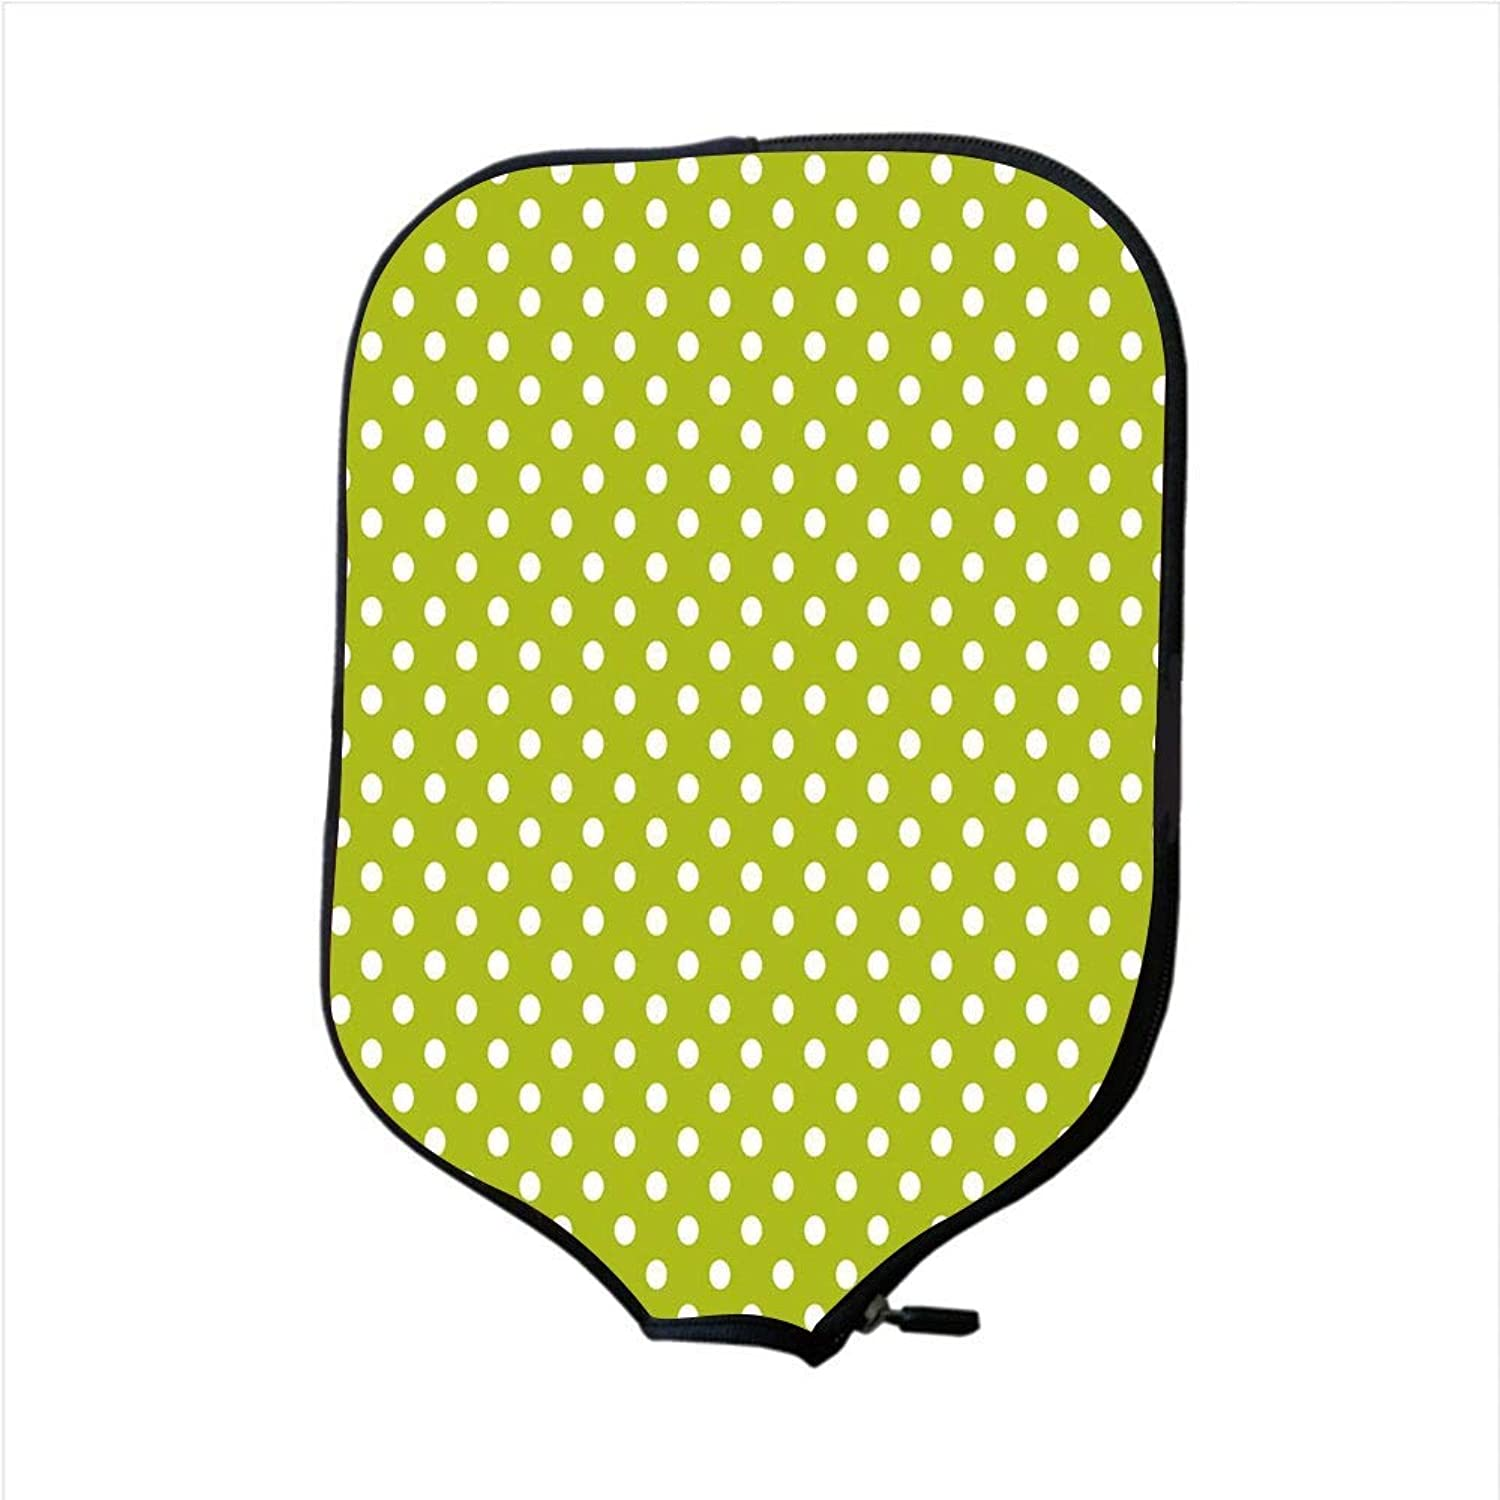 Fine Neoprene Pickleball Paddle Racket Cover Case,Retro,Vintage Old Fashioned 60s 70s Inspired Polka Dots Pop Art Style Art Print,Lime Green and White,Fit for Most Rackets